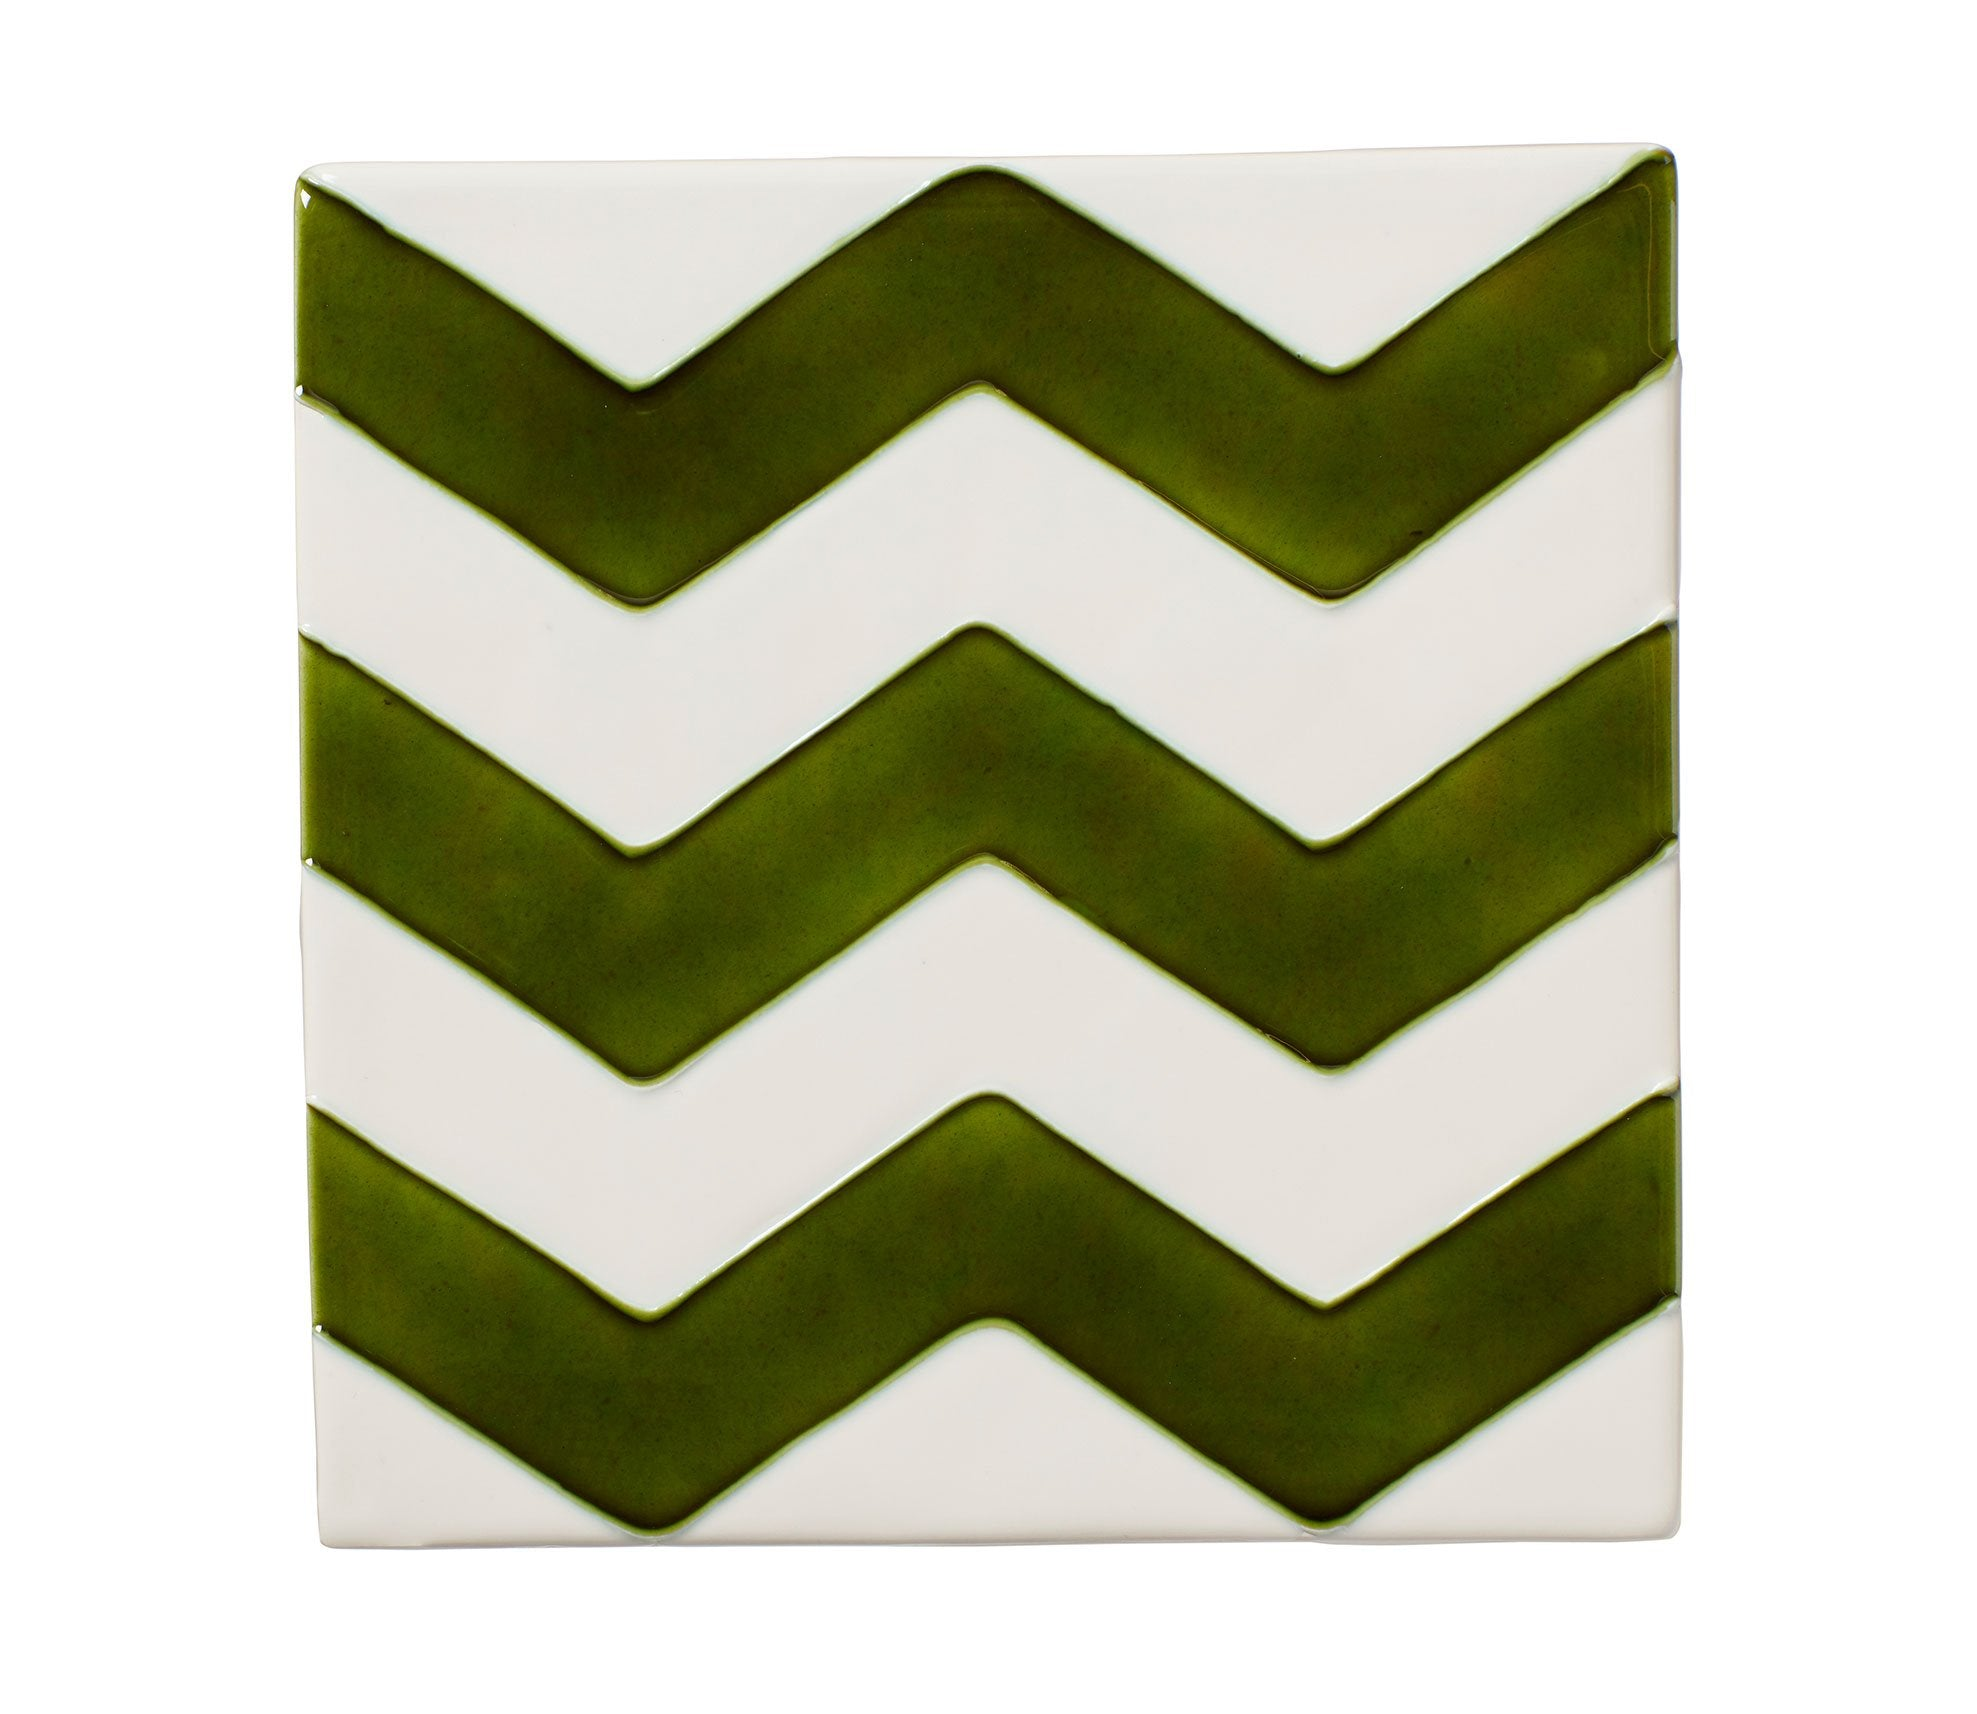 Hanley Tube Lined Decorative Tiles Product Image 11